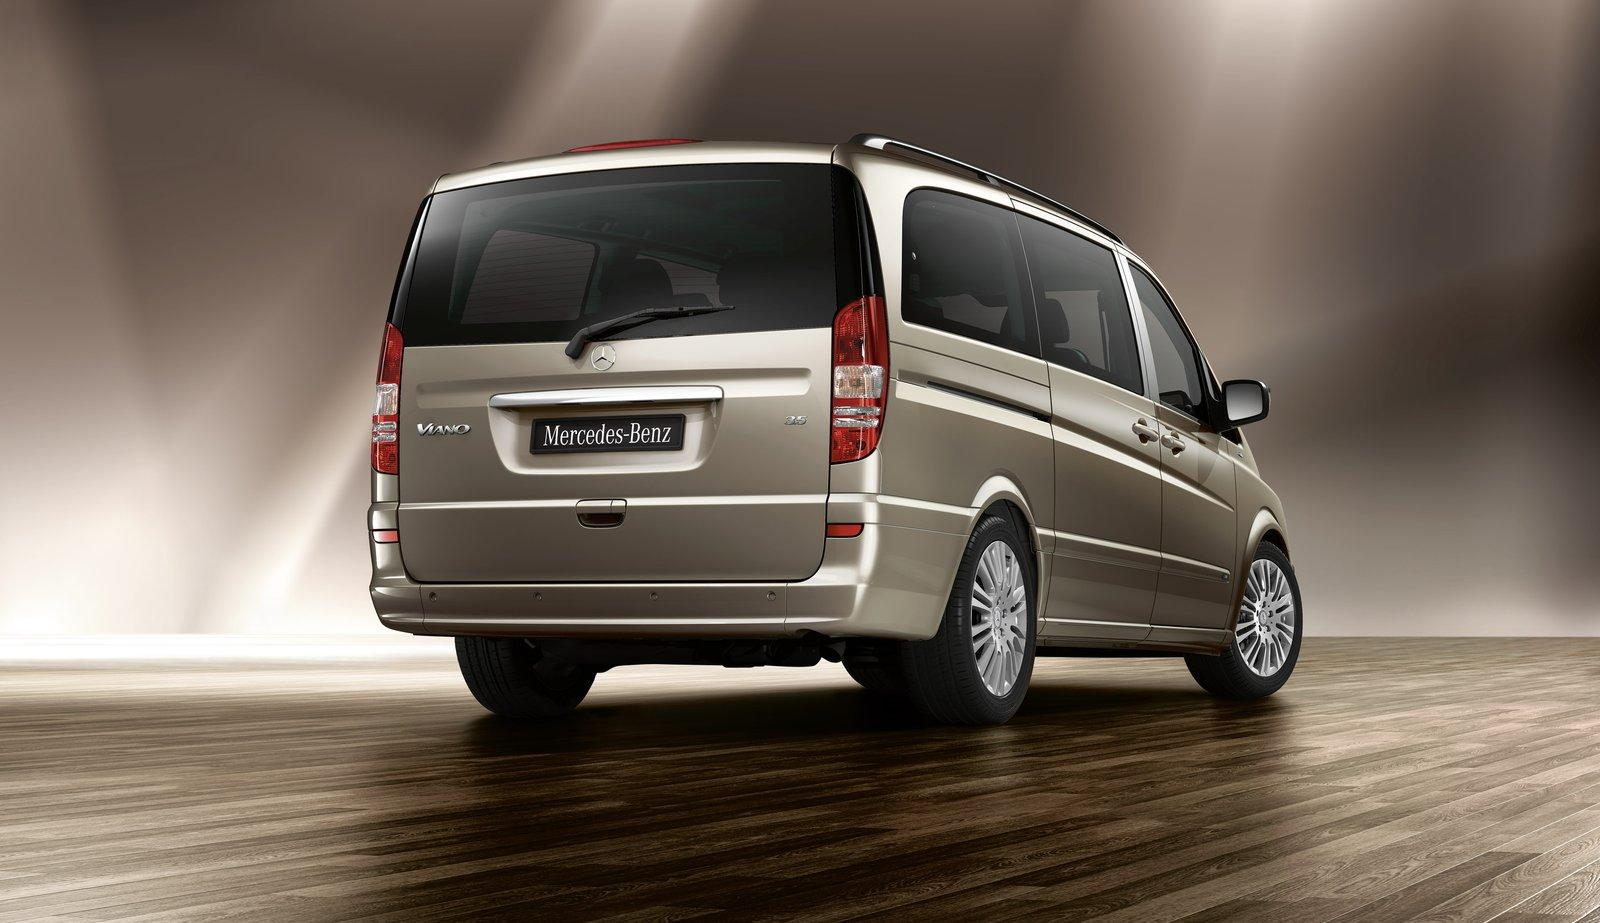 mercedes-viano-restyling-2011-vito-restyling-2011-3